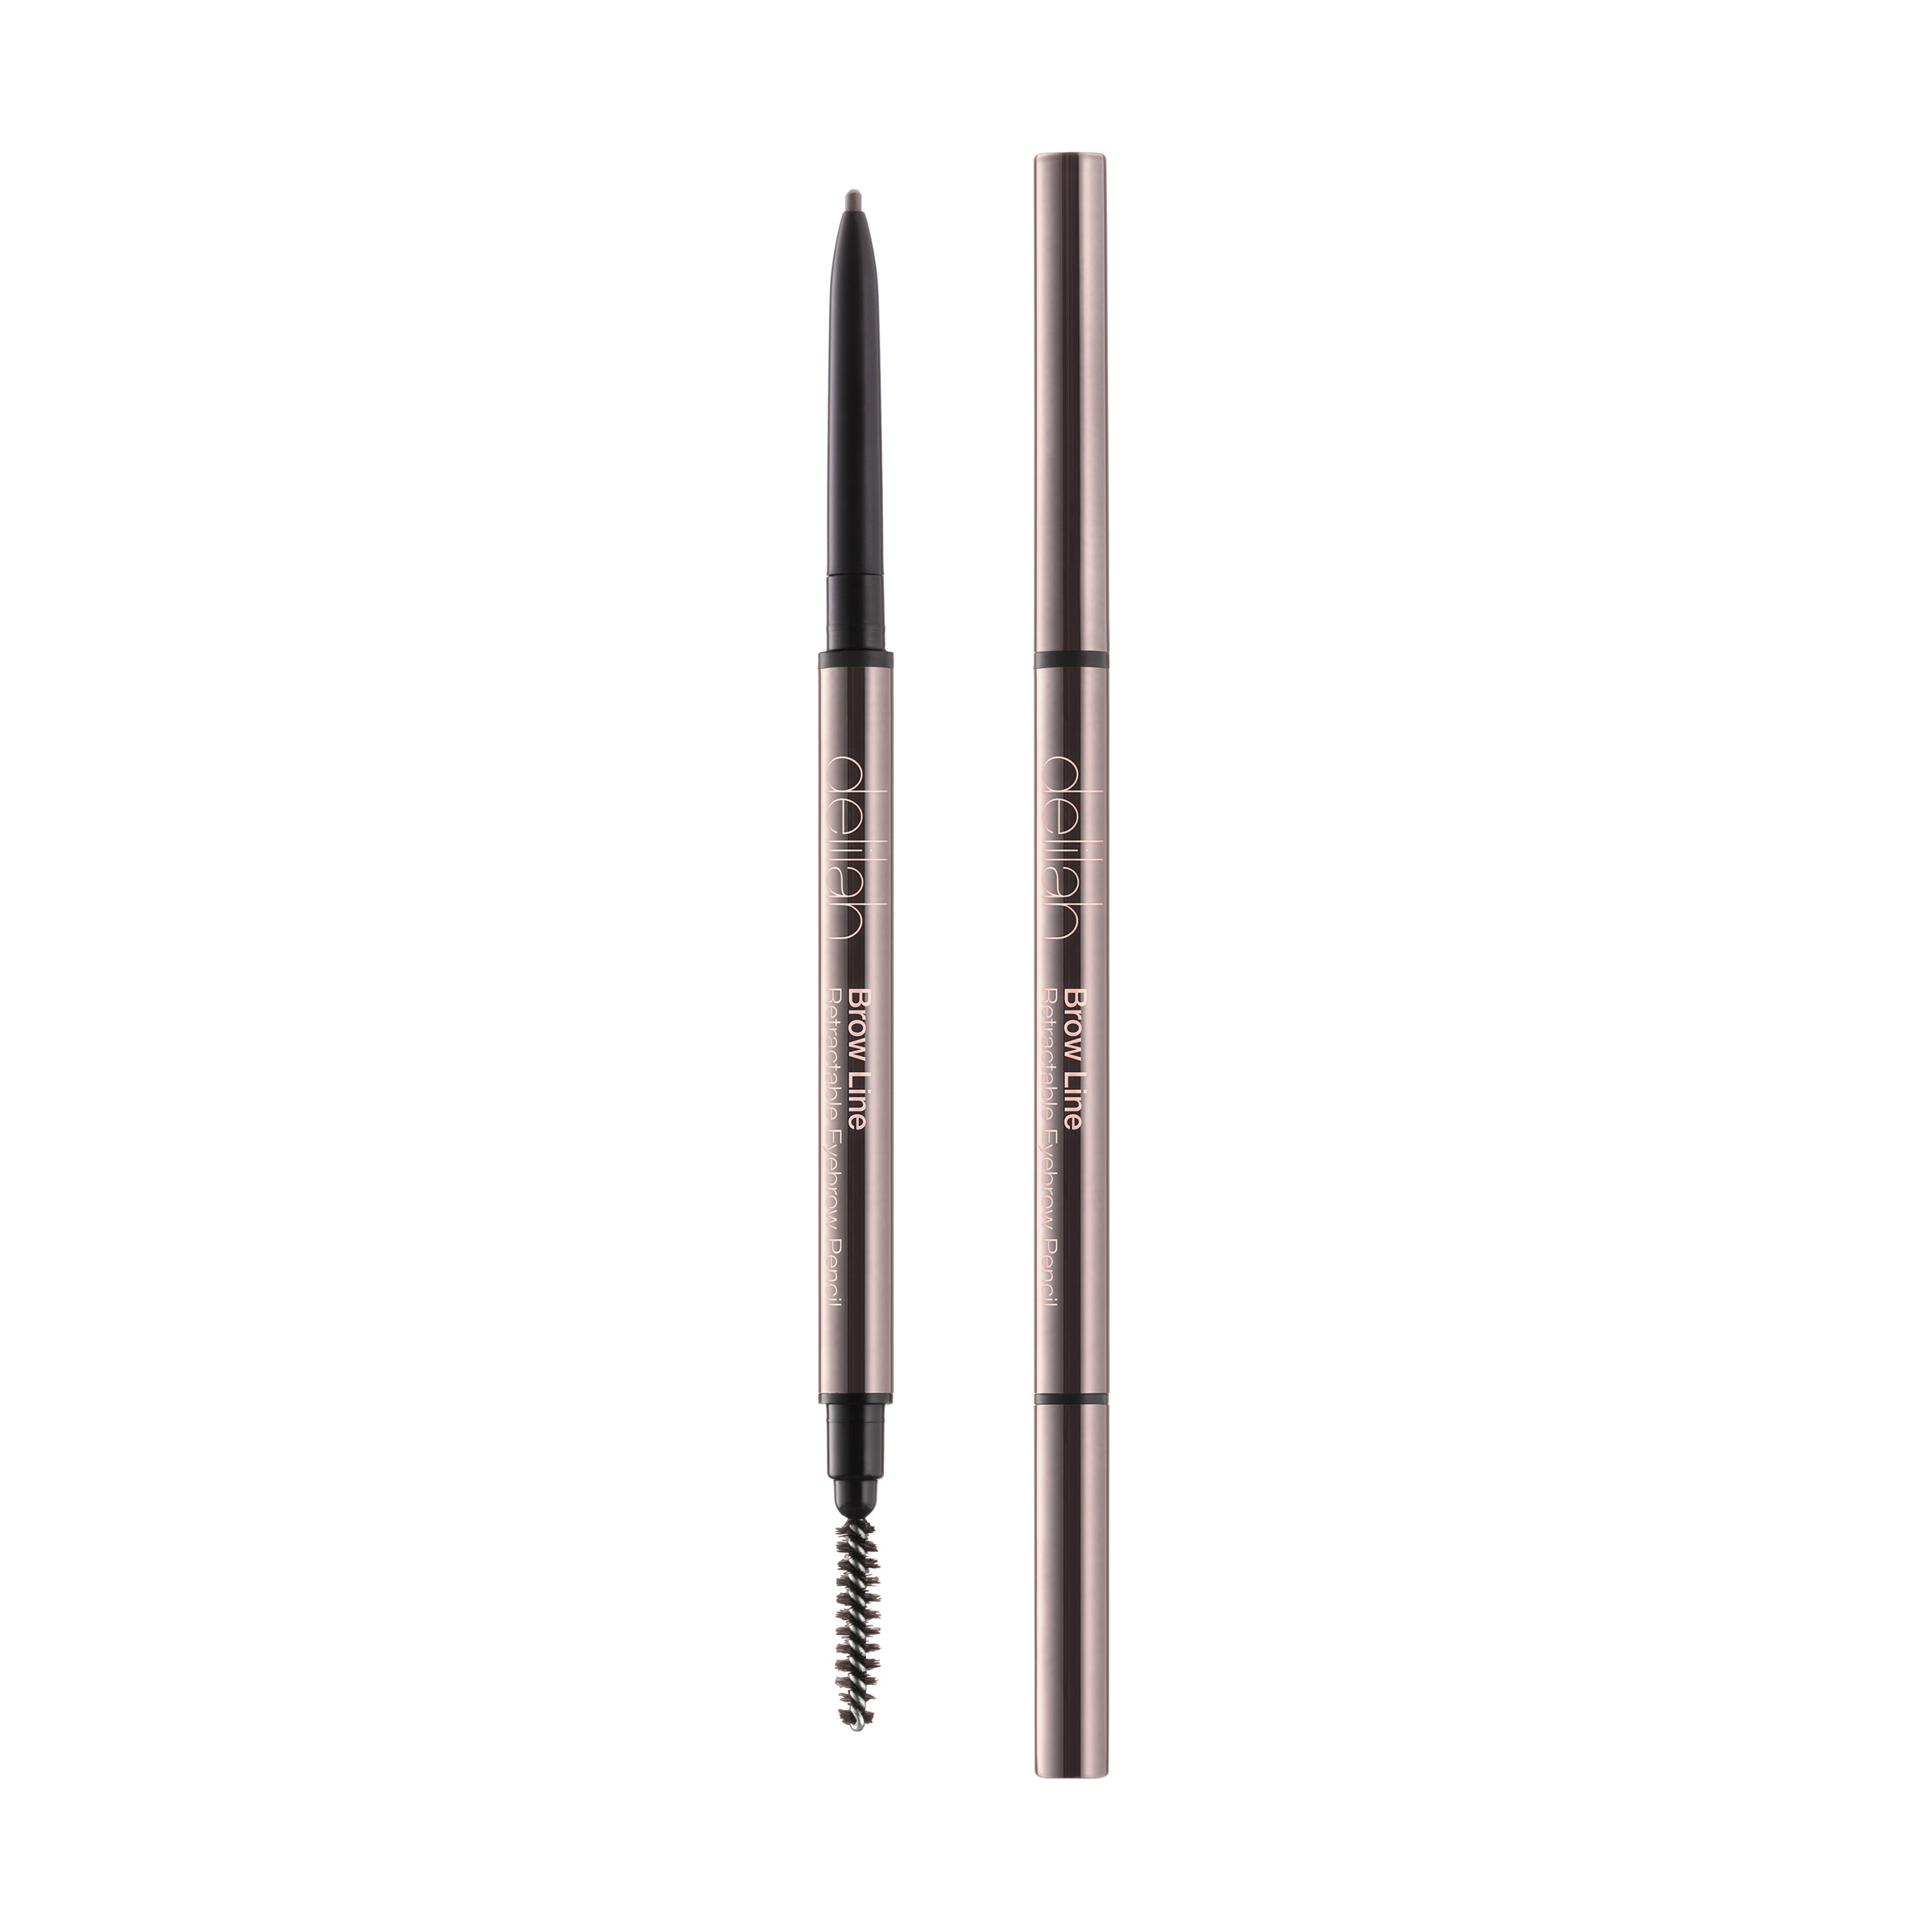 delilah brow line, trends beauty & lifestyle distribution